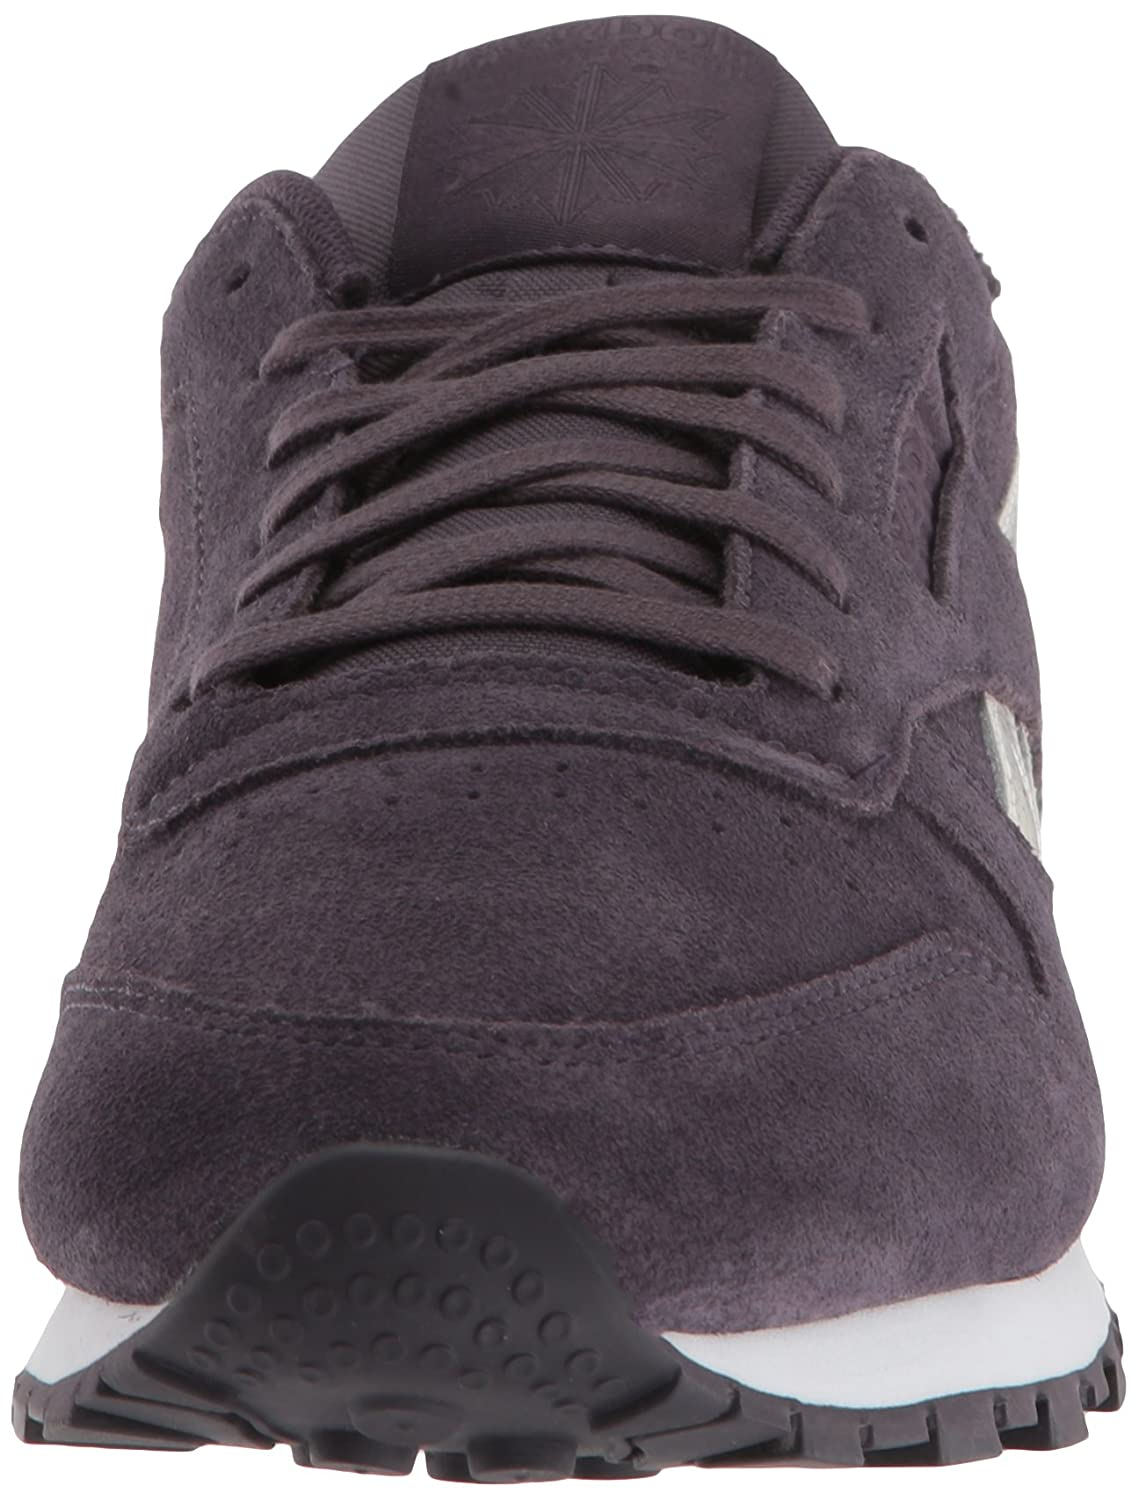 Reebok Classic Classic Classic Leder Sneaker Sidestripes -Smoky Volcan 680640